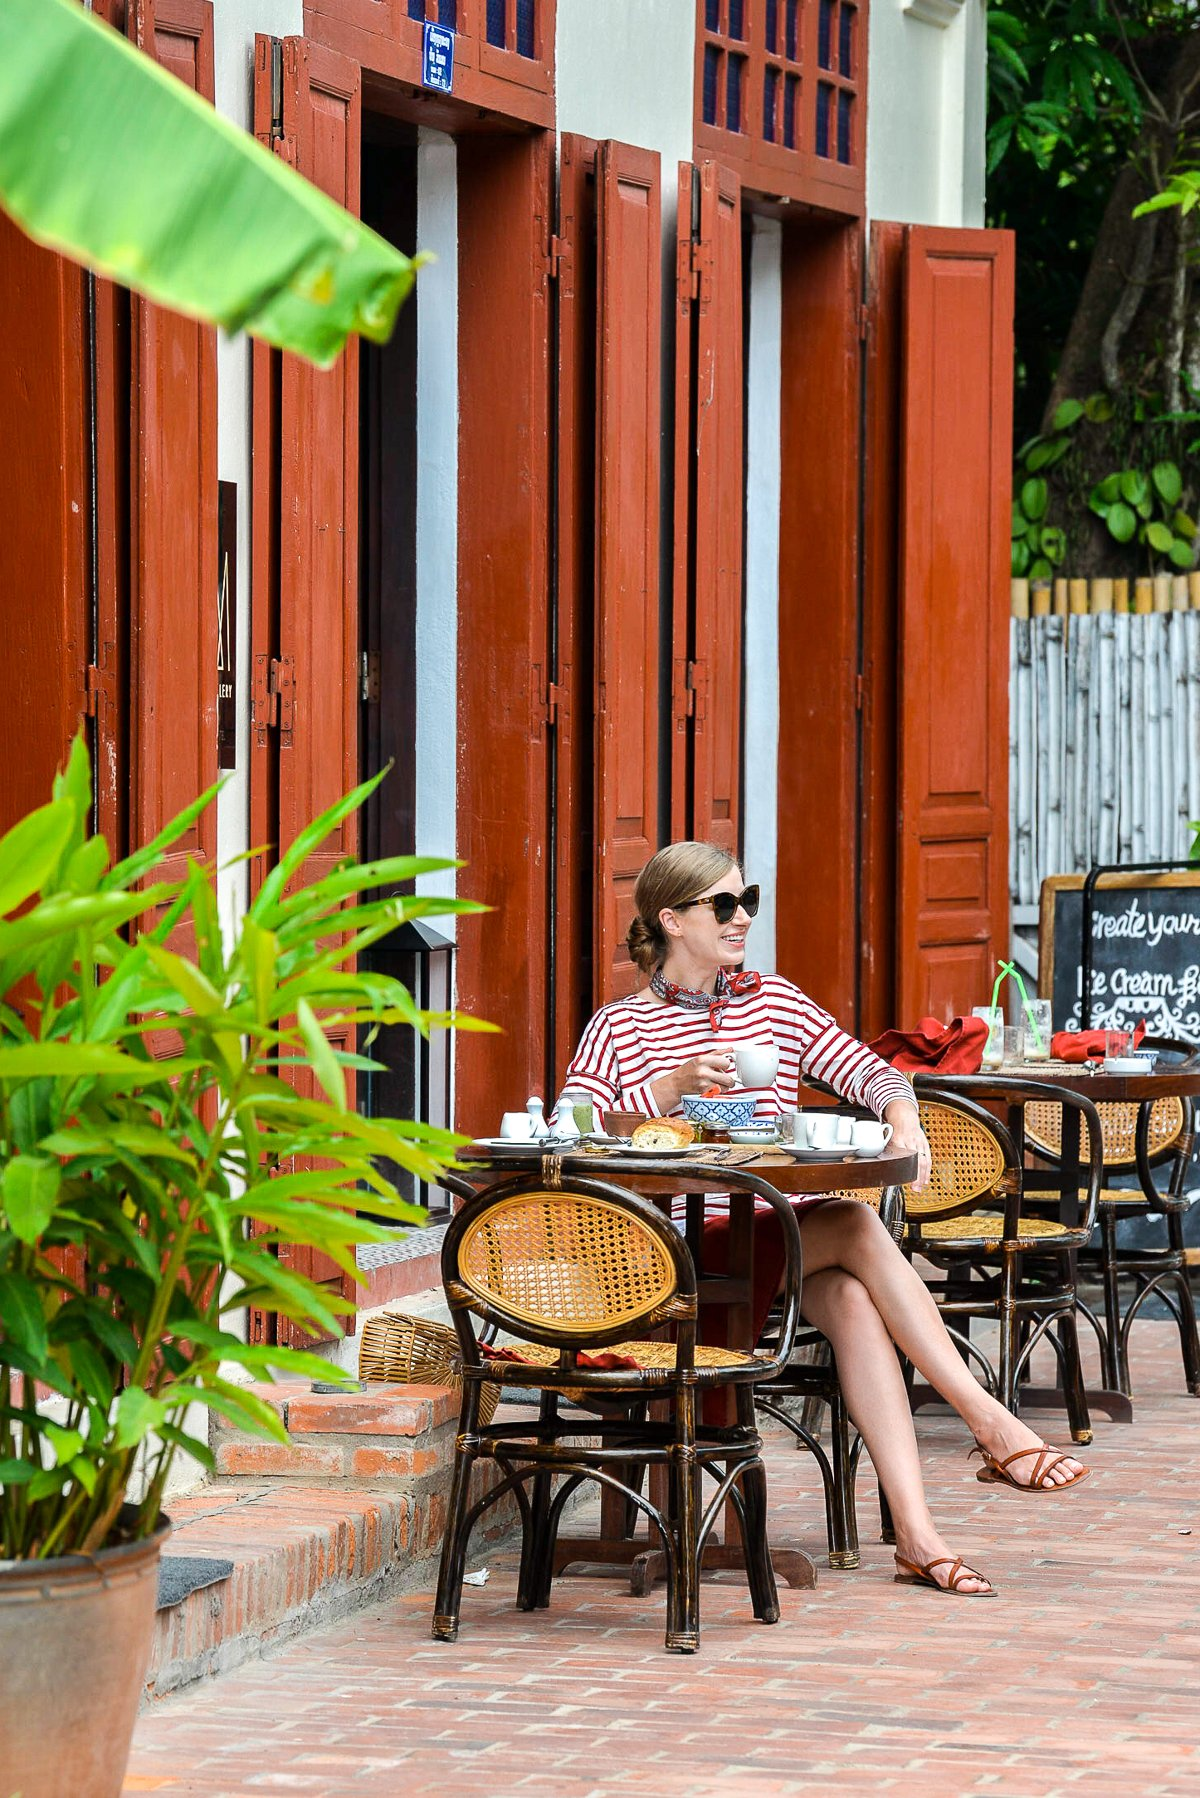 Stacie Flinner 3 Nagas Complete Guide to Luang Prabang-79